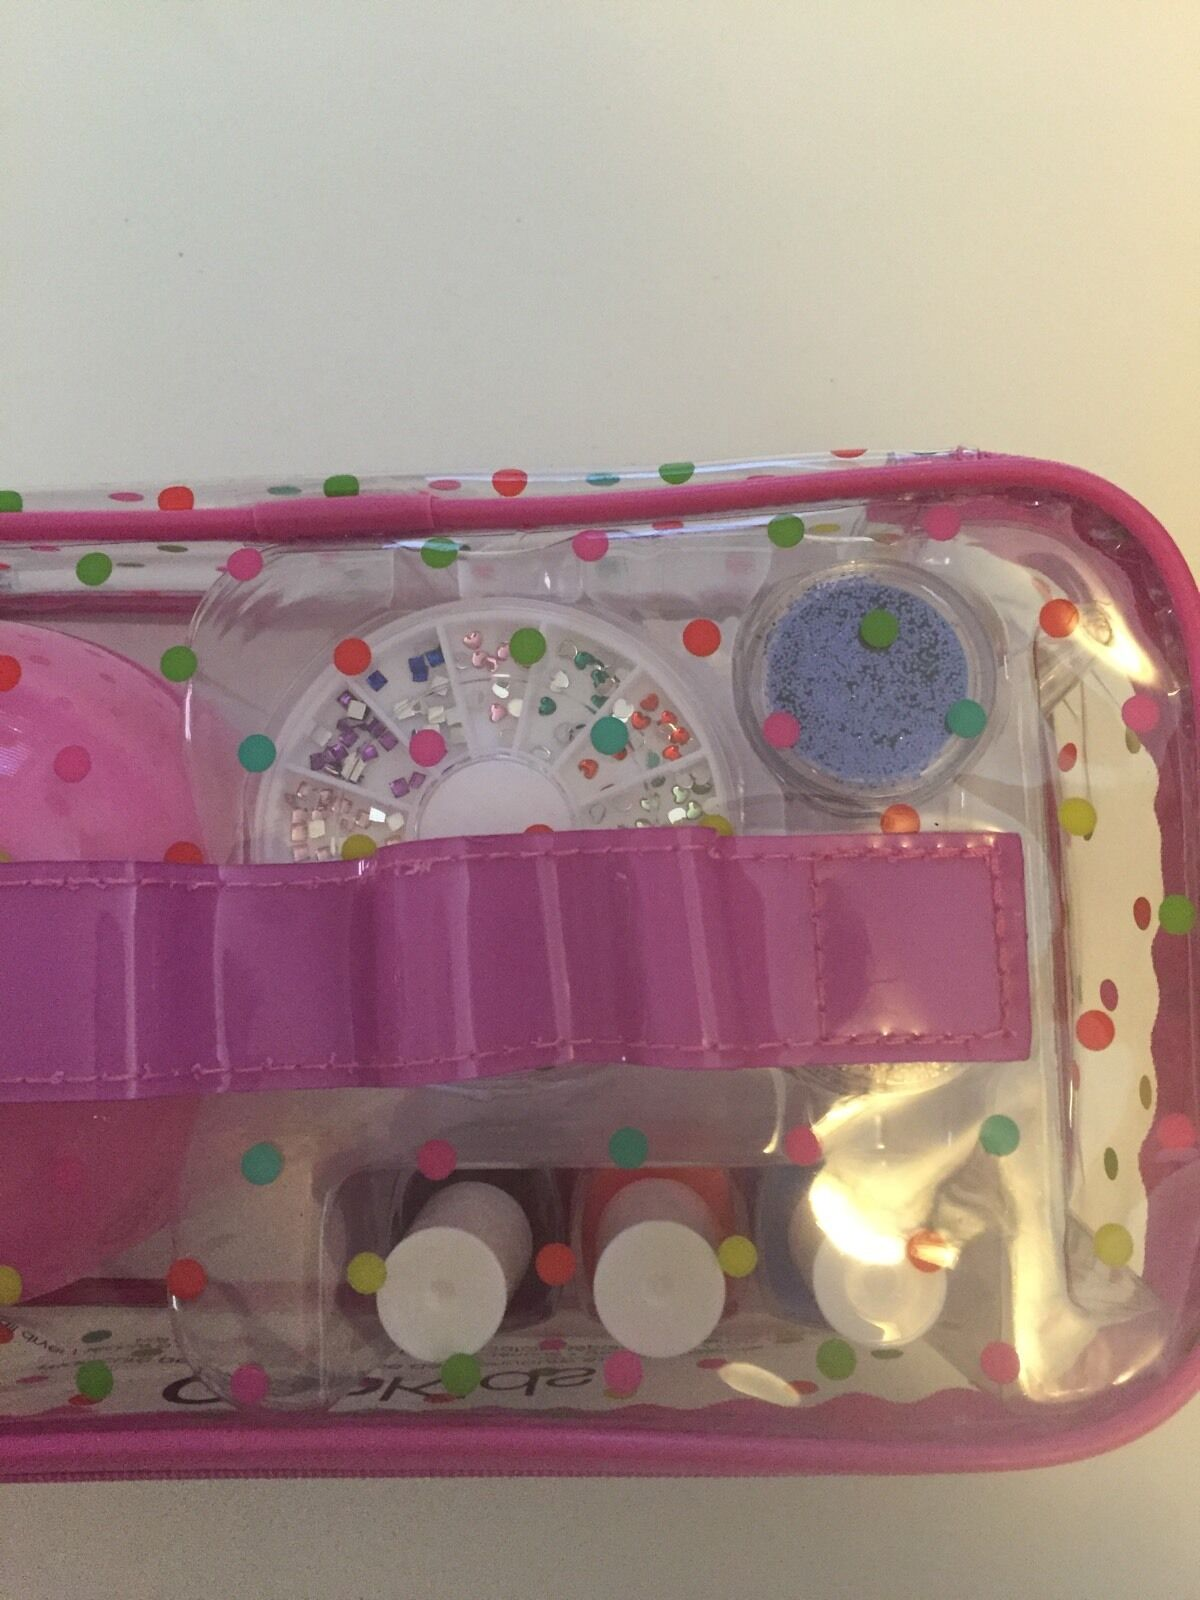 GapKids Manicure Pedicure Kit With Nail Dryer in Bag Battery Not ...